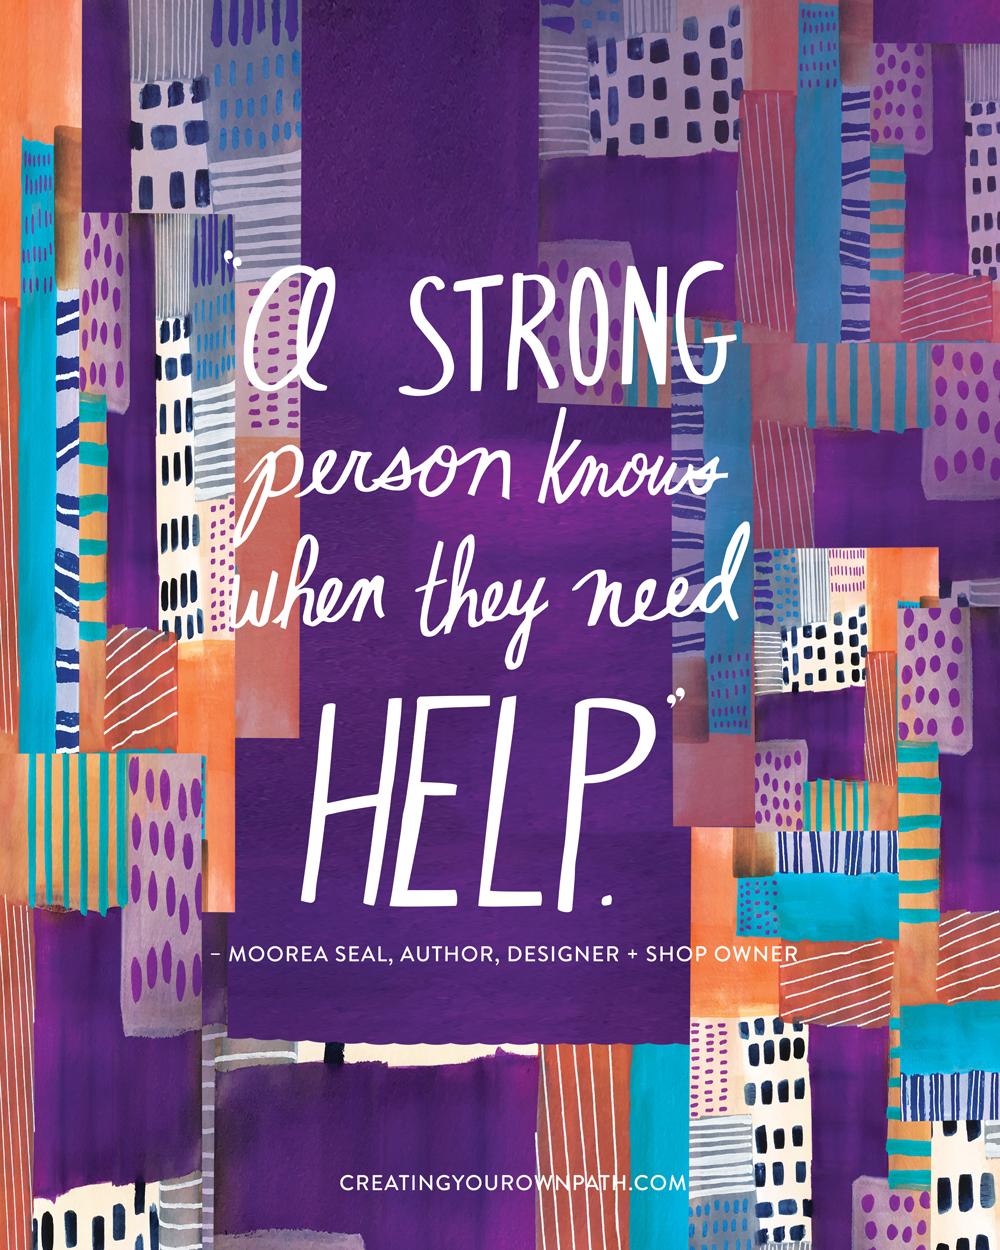 """A strong person knows when they need help."" —Moorea Seal, Author, Designer + Shop Owner // Art by Melanie Biehle"